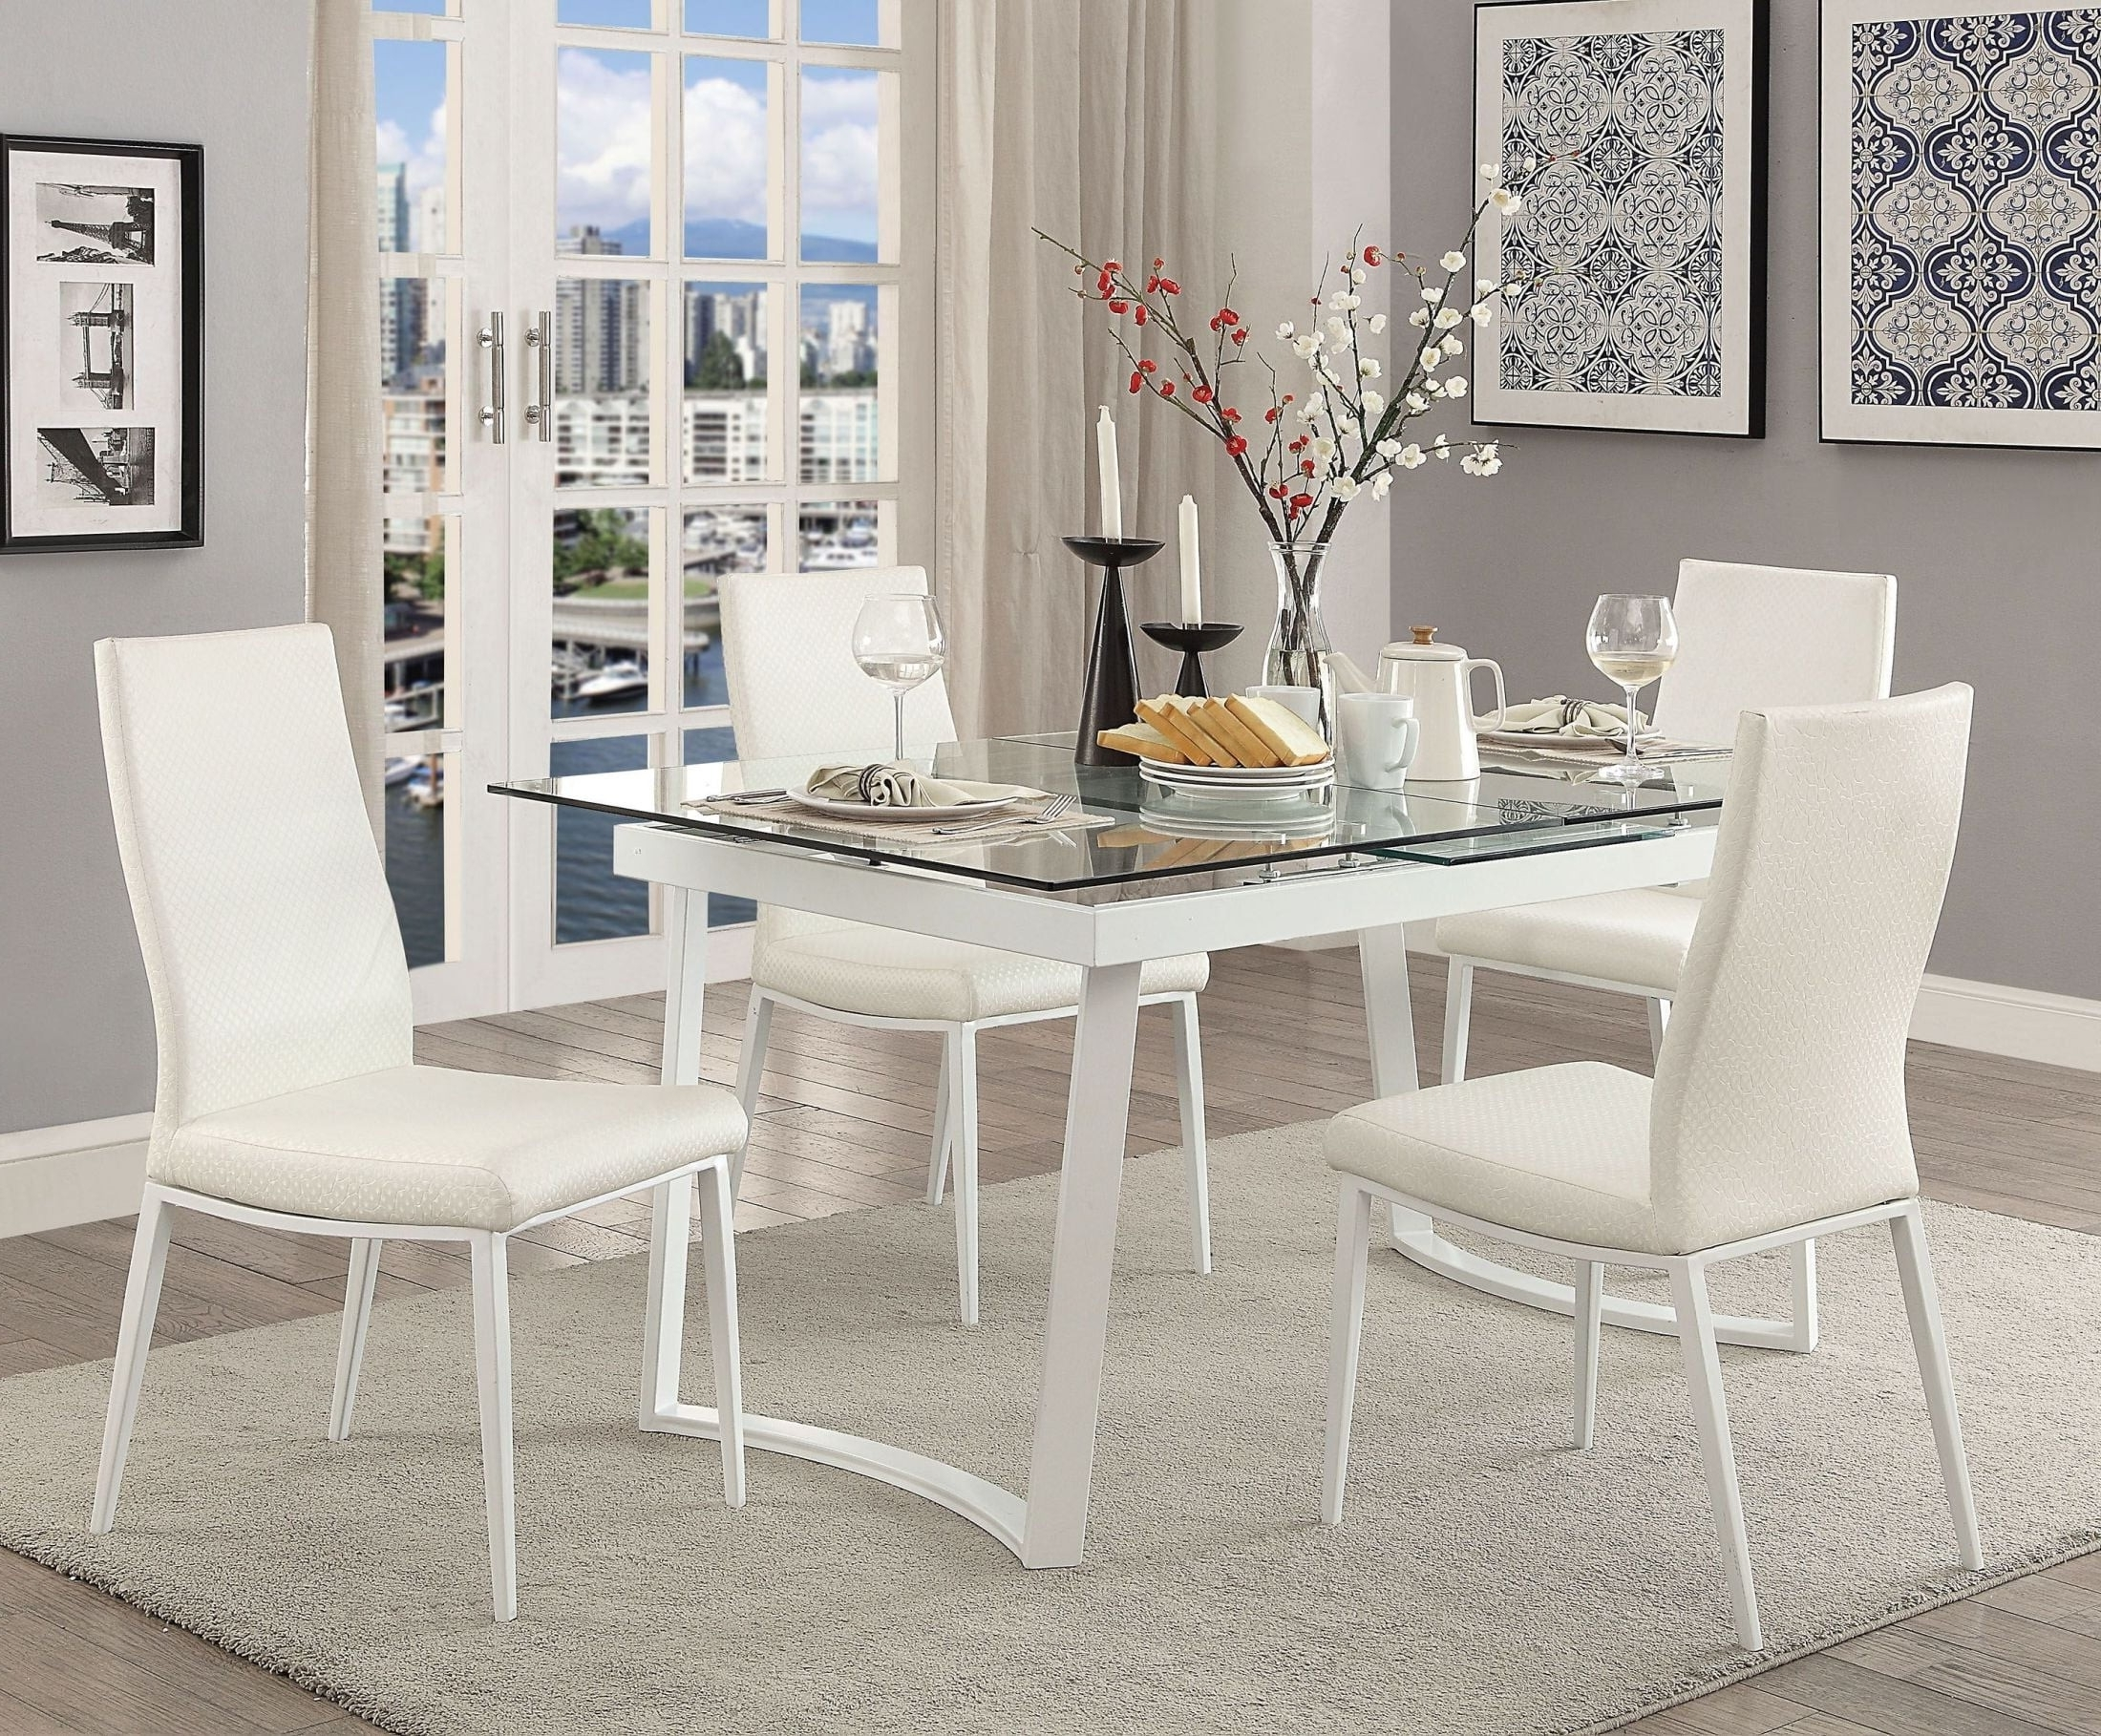 White Extendable Dining Tables And Chairs Inside 2017 Furniture Of America Miriam White Extendable Dining Table – Miriam (View 23 of 25)